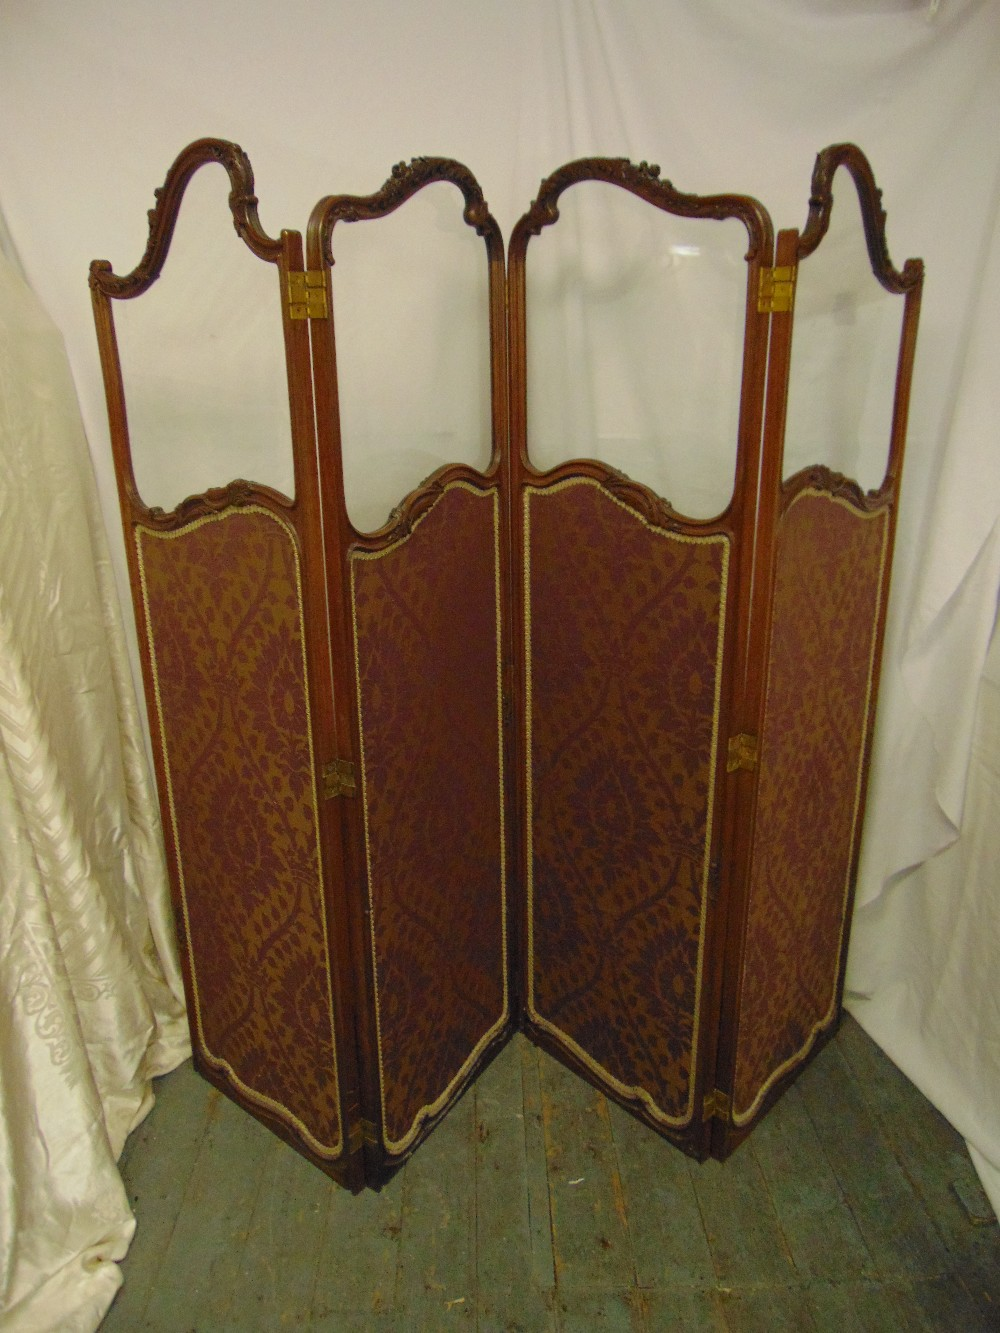 Lot 16 - A French mahogany and glazed four panel screen decorated with material panels with stylised leaf and